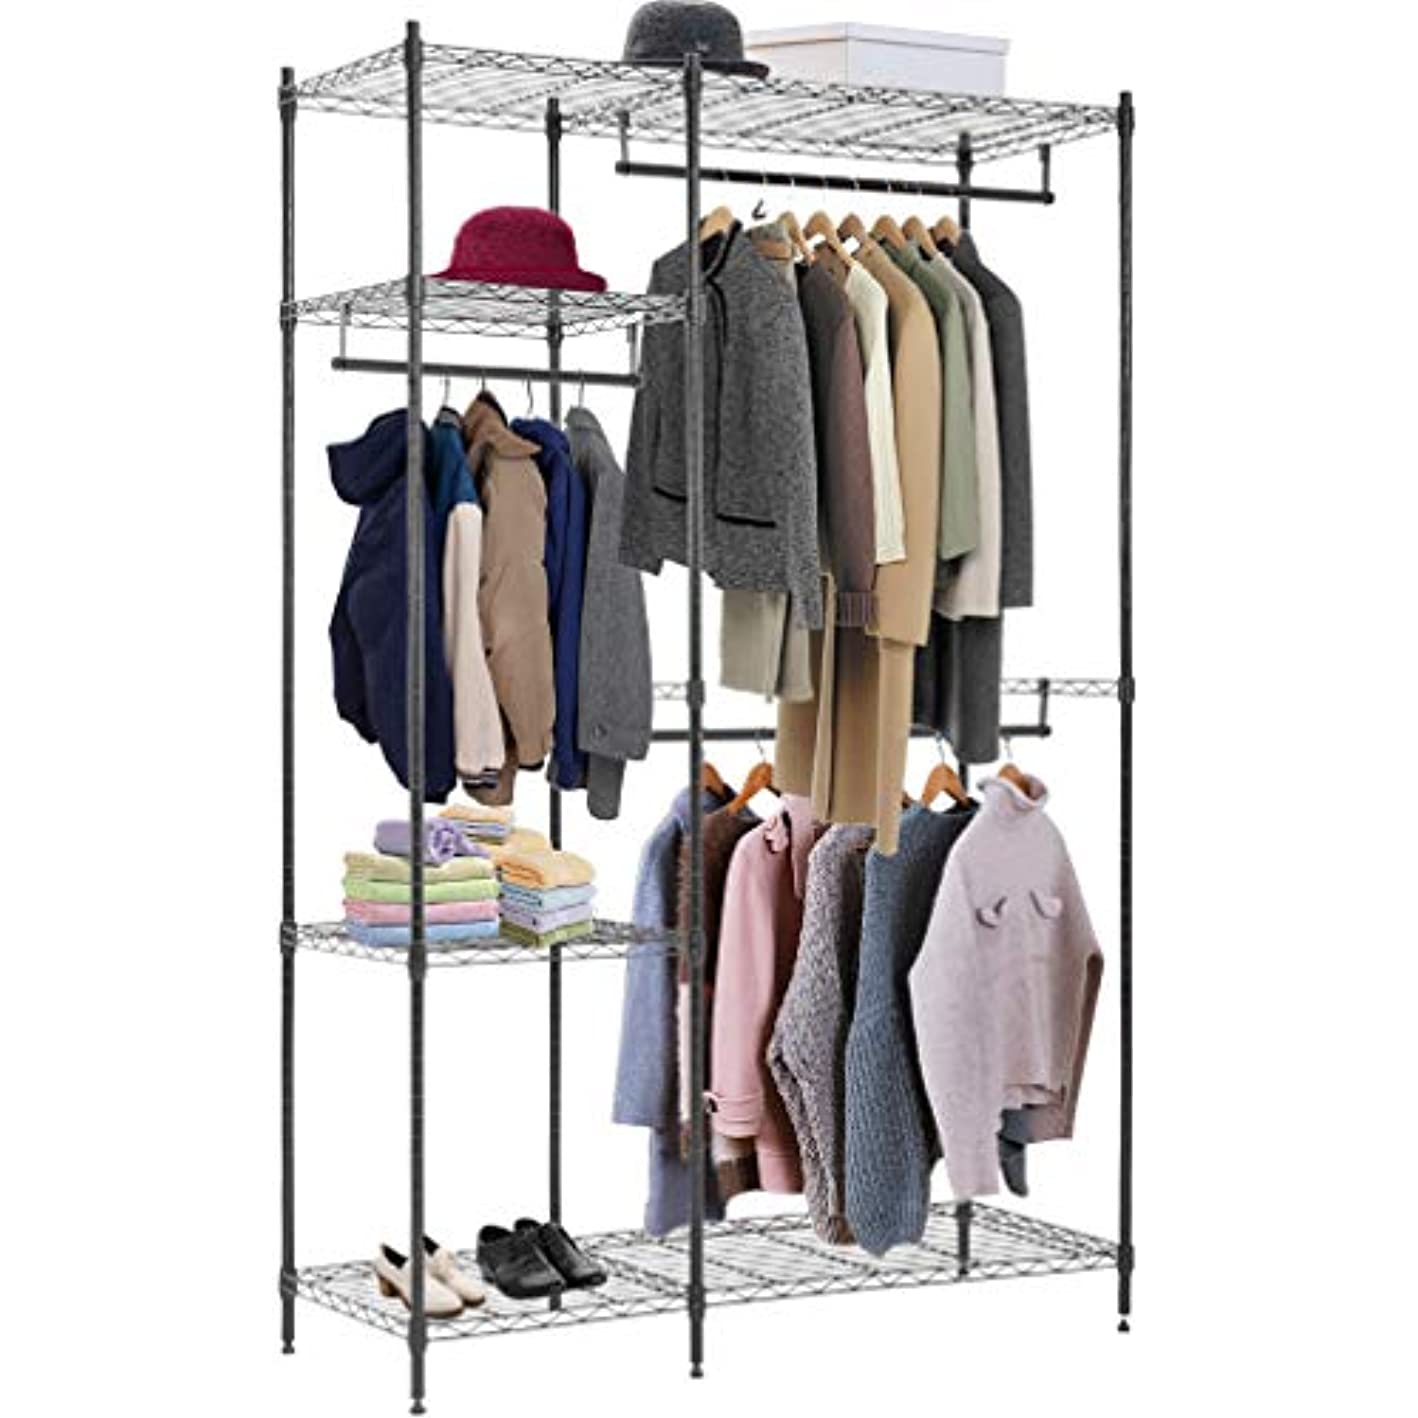 Hanging Closet Organizer and Storage Heavy Duty Clothes Rack Sturdy 3 Rod Garment Rack Large with Wire Shelving Height Adjustable Commercial Grade Metal Clothes Stand Rack for Bedroom Cloakroom,Black